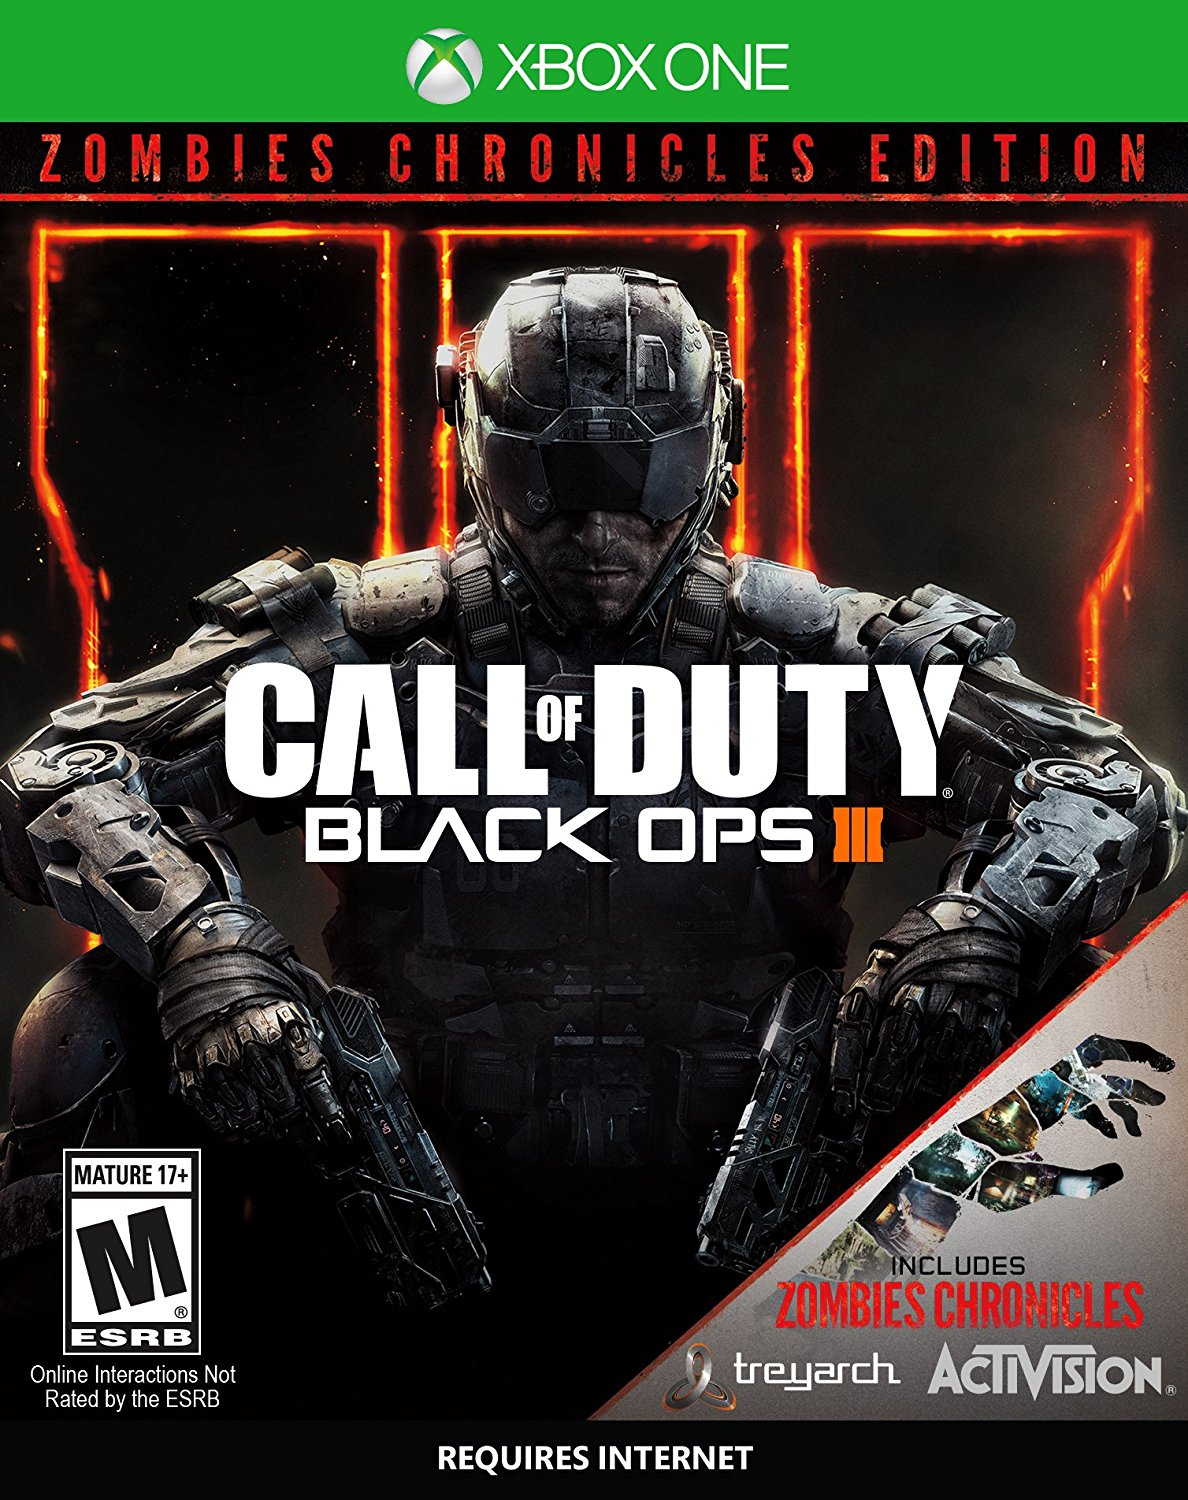 Call of Duty: Black Ops 3 Zombie Chronicles Edition, Activision, Xbox One, 047875881228